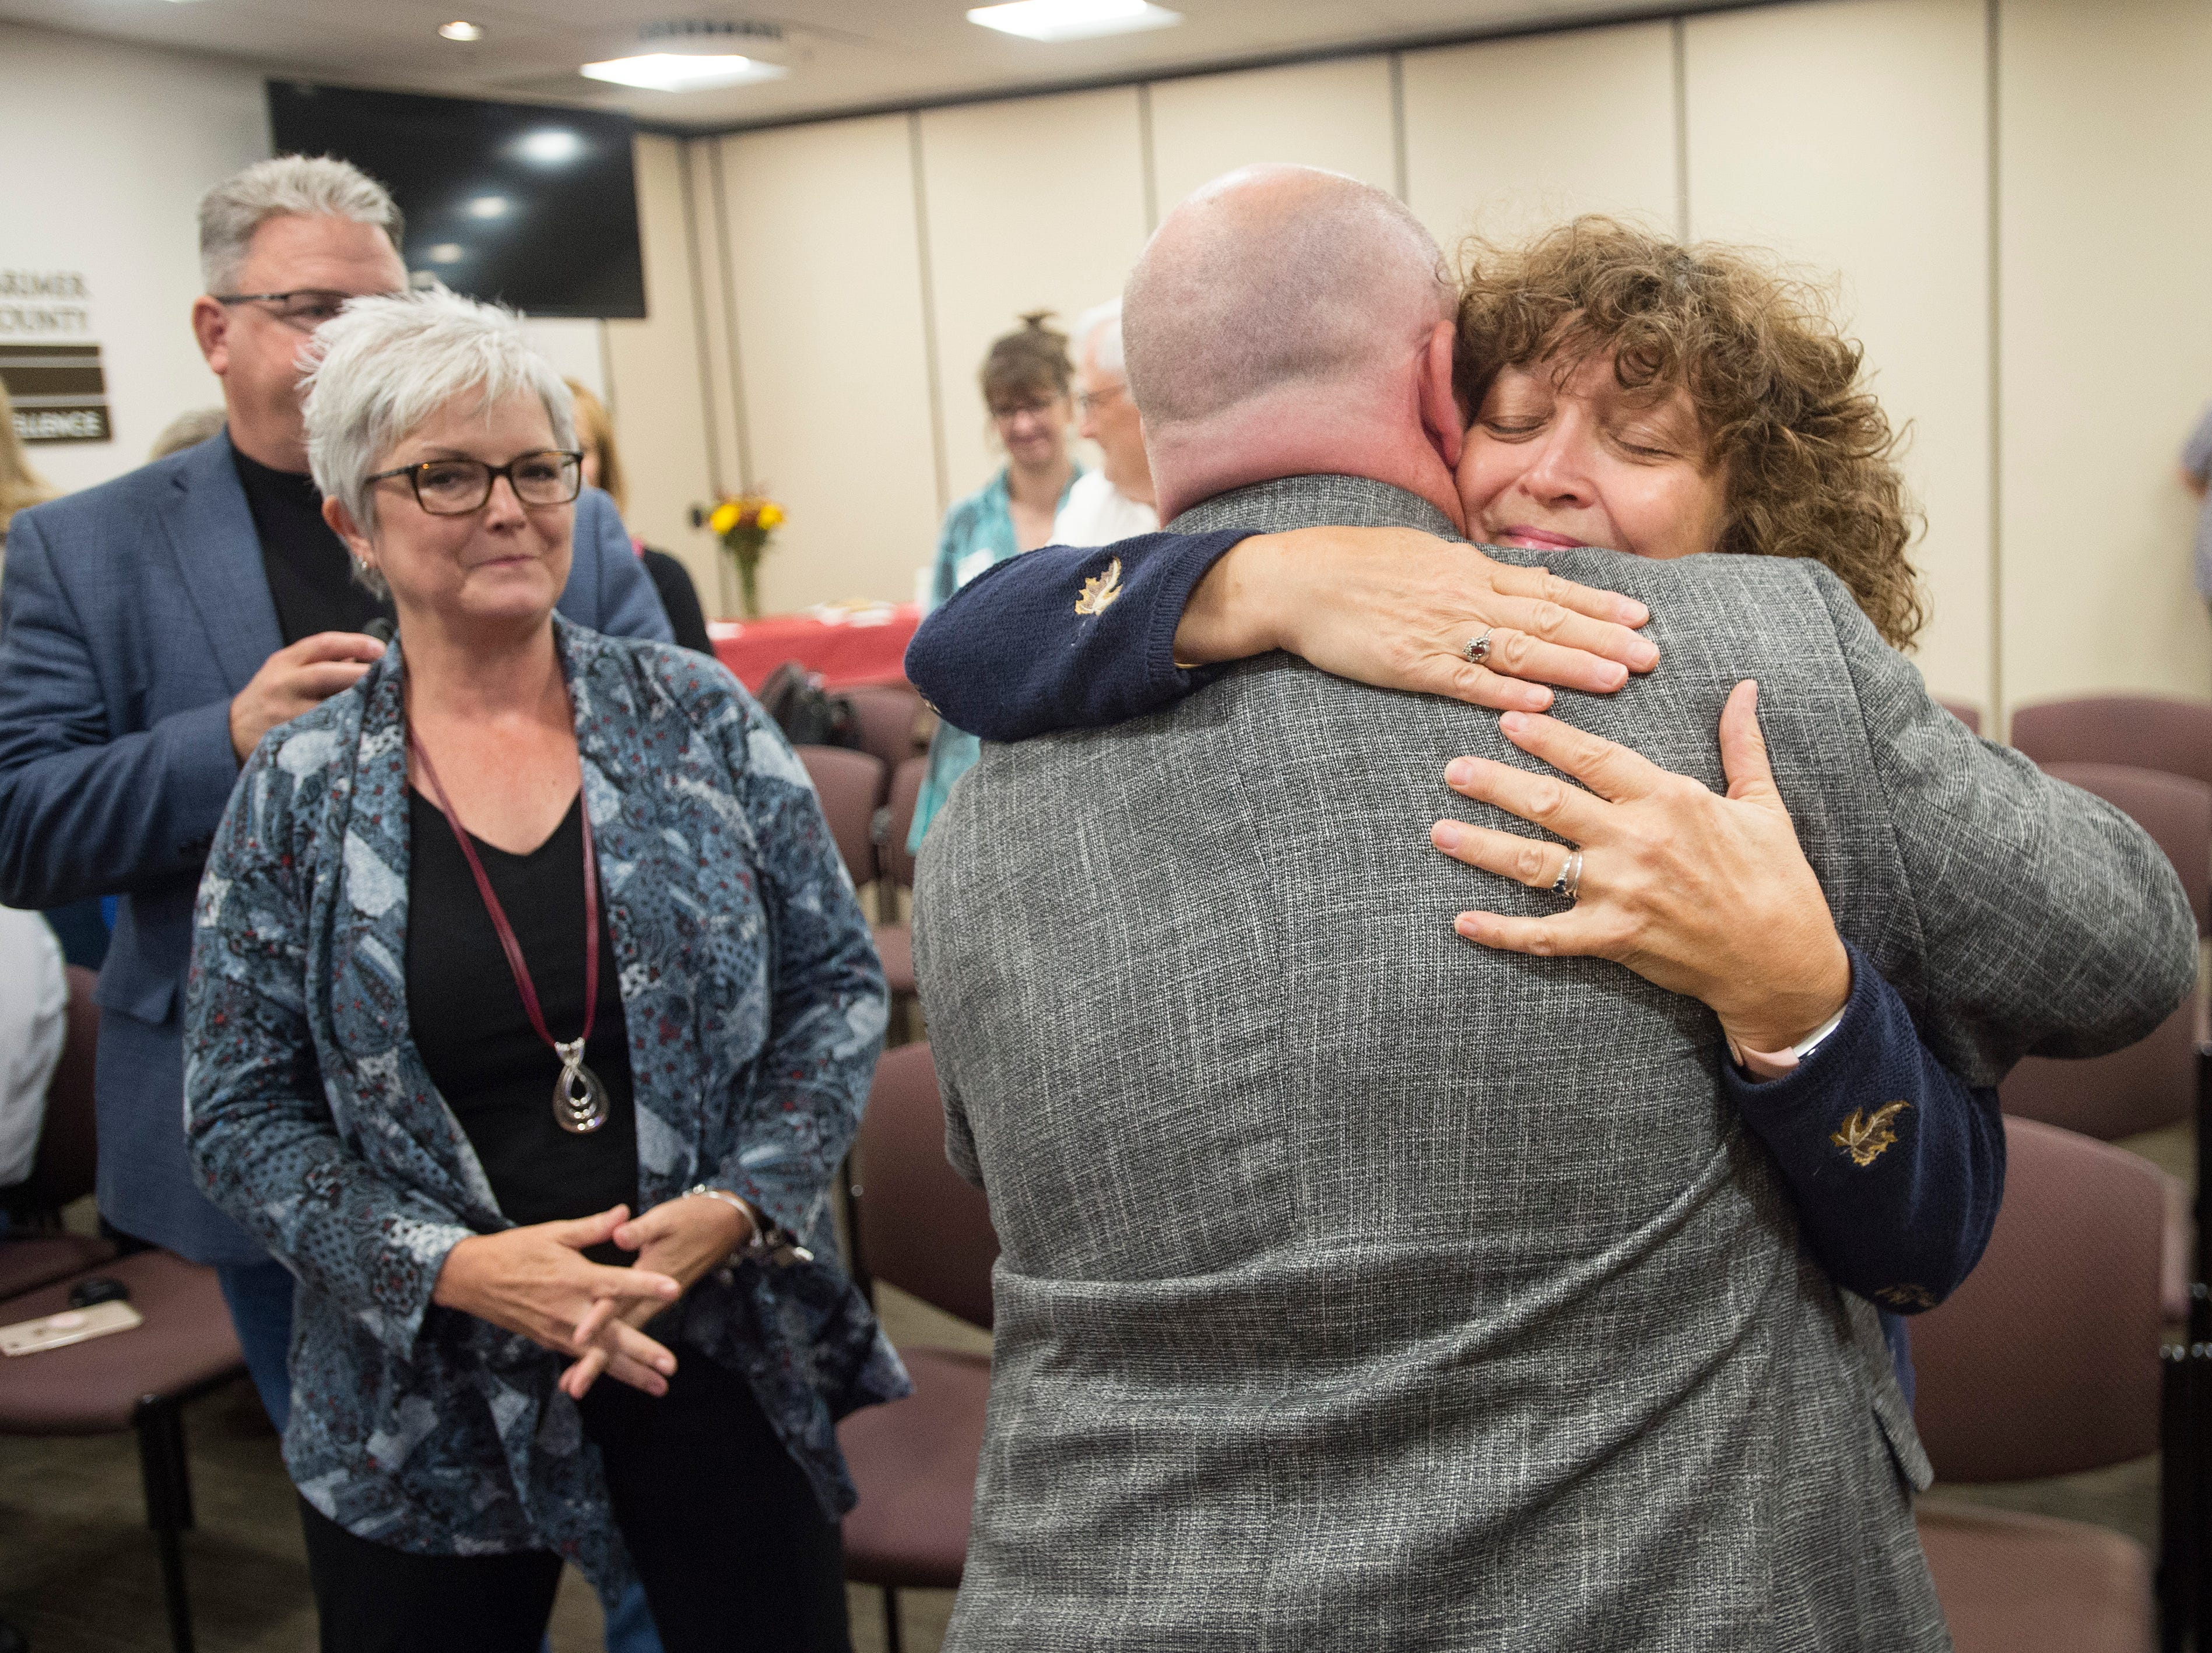 Jeannette Gaiter hugs Sean Dougherty after he is sworn in as Larimer County Commissioner on Friday, September 28, 2018. Dougherty was appointed to the position in the vacancy left by Lew Gaiter III after his death on September 18.